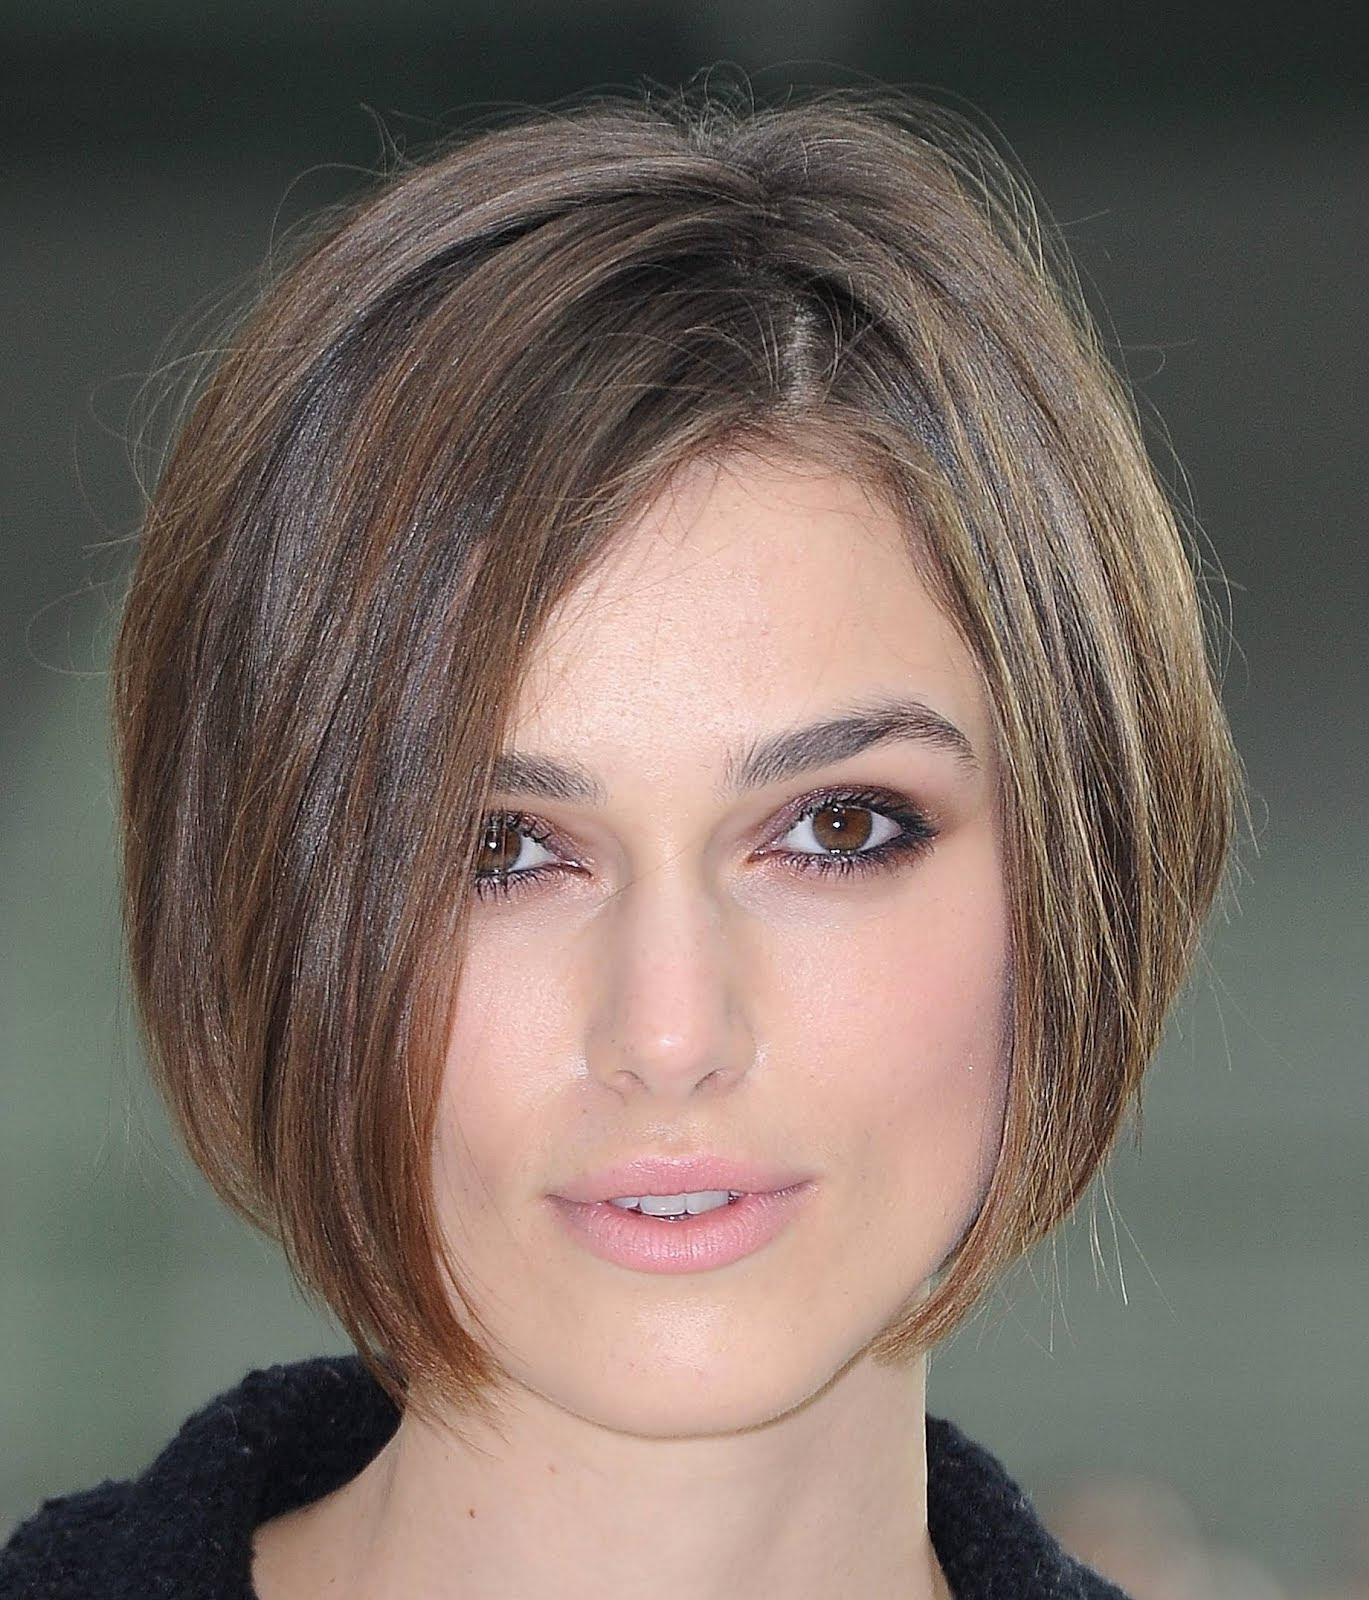 30 Best Short Hair Cuts To Improve Your Style